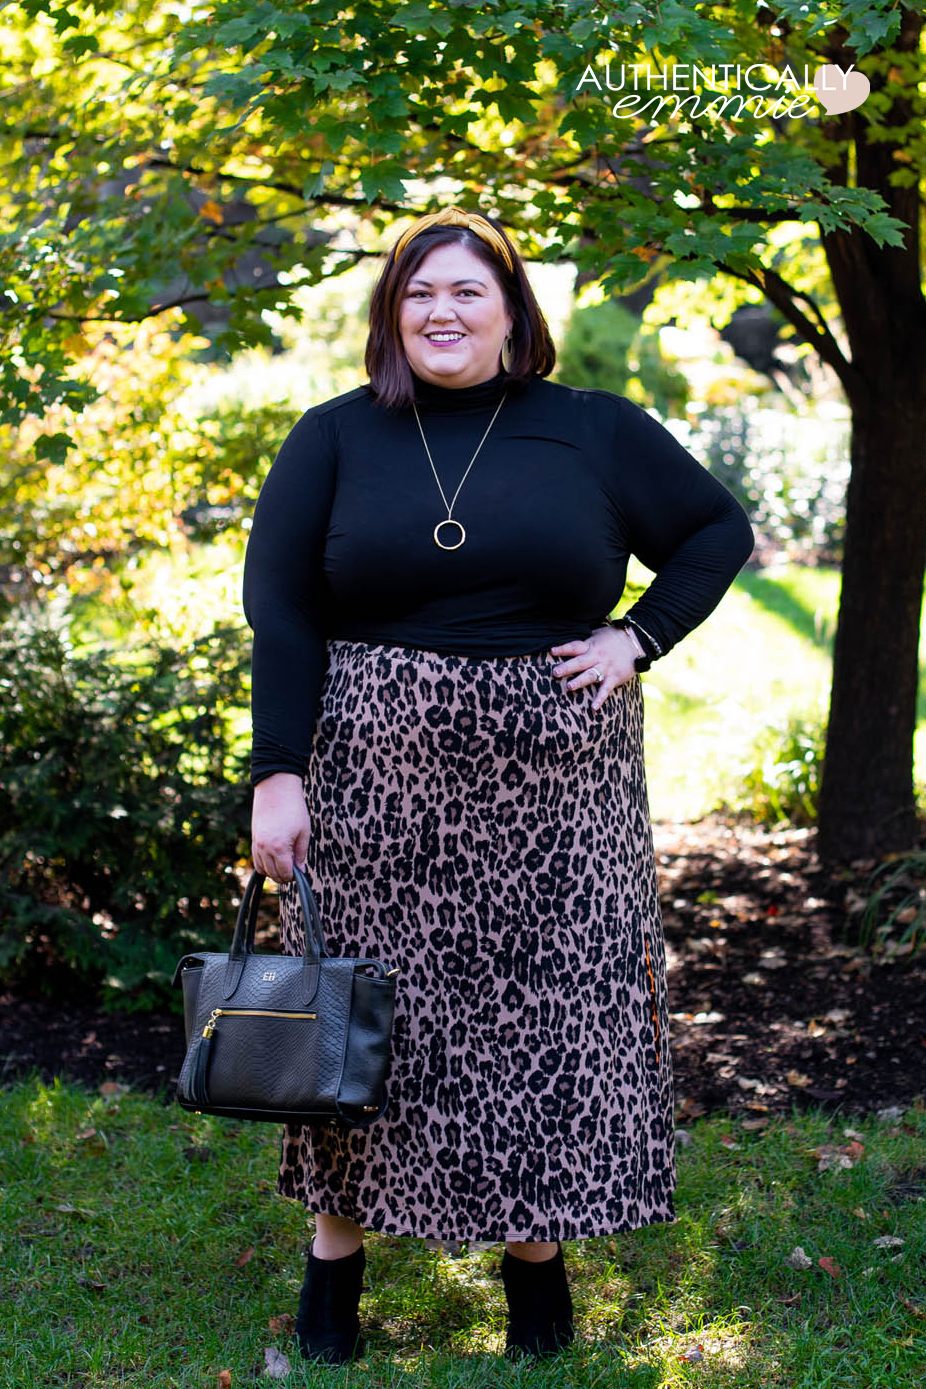 Cold Weather Leopard Print Outfit Idea